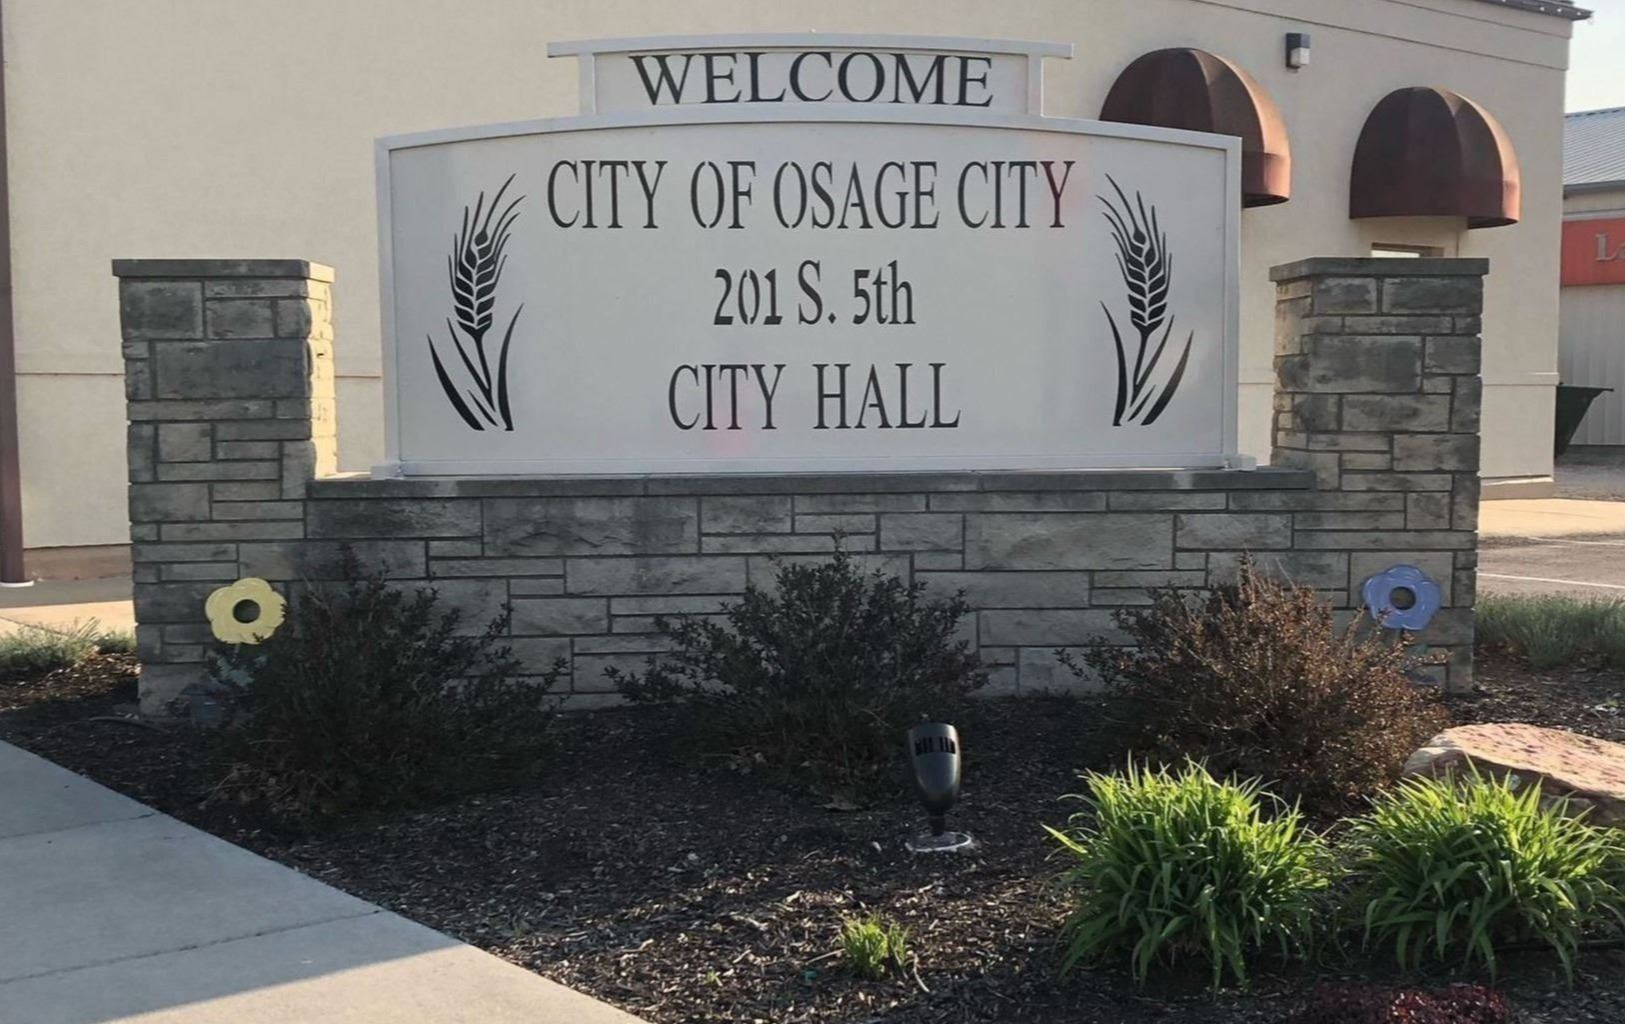 City Hall Welcome Sign (002)